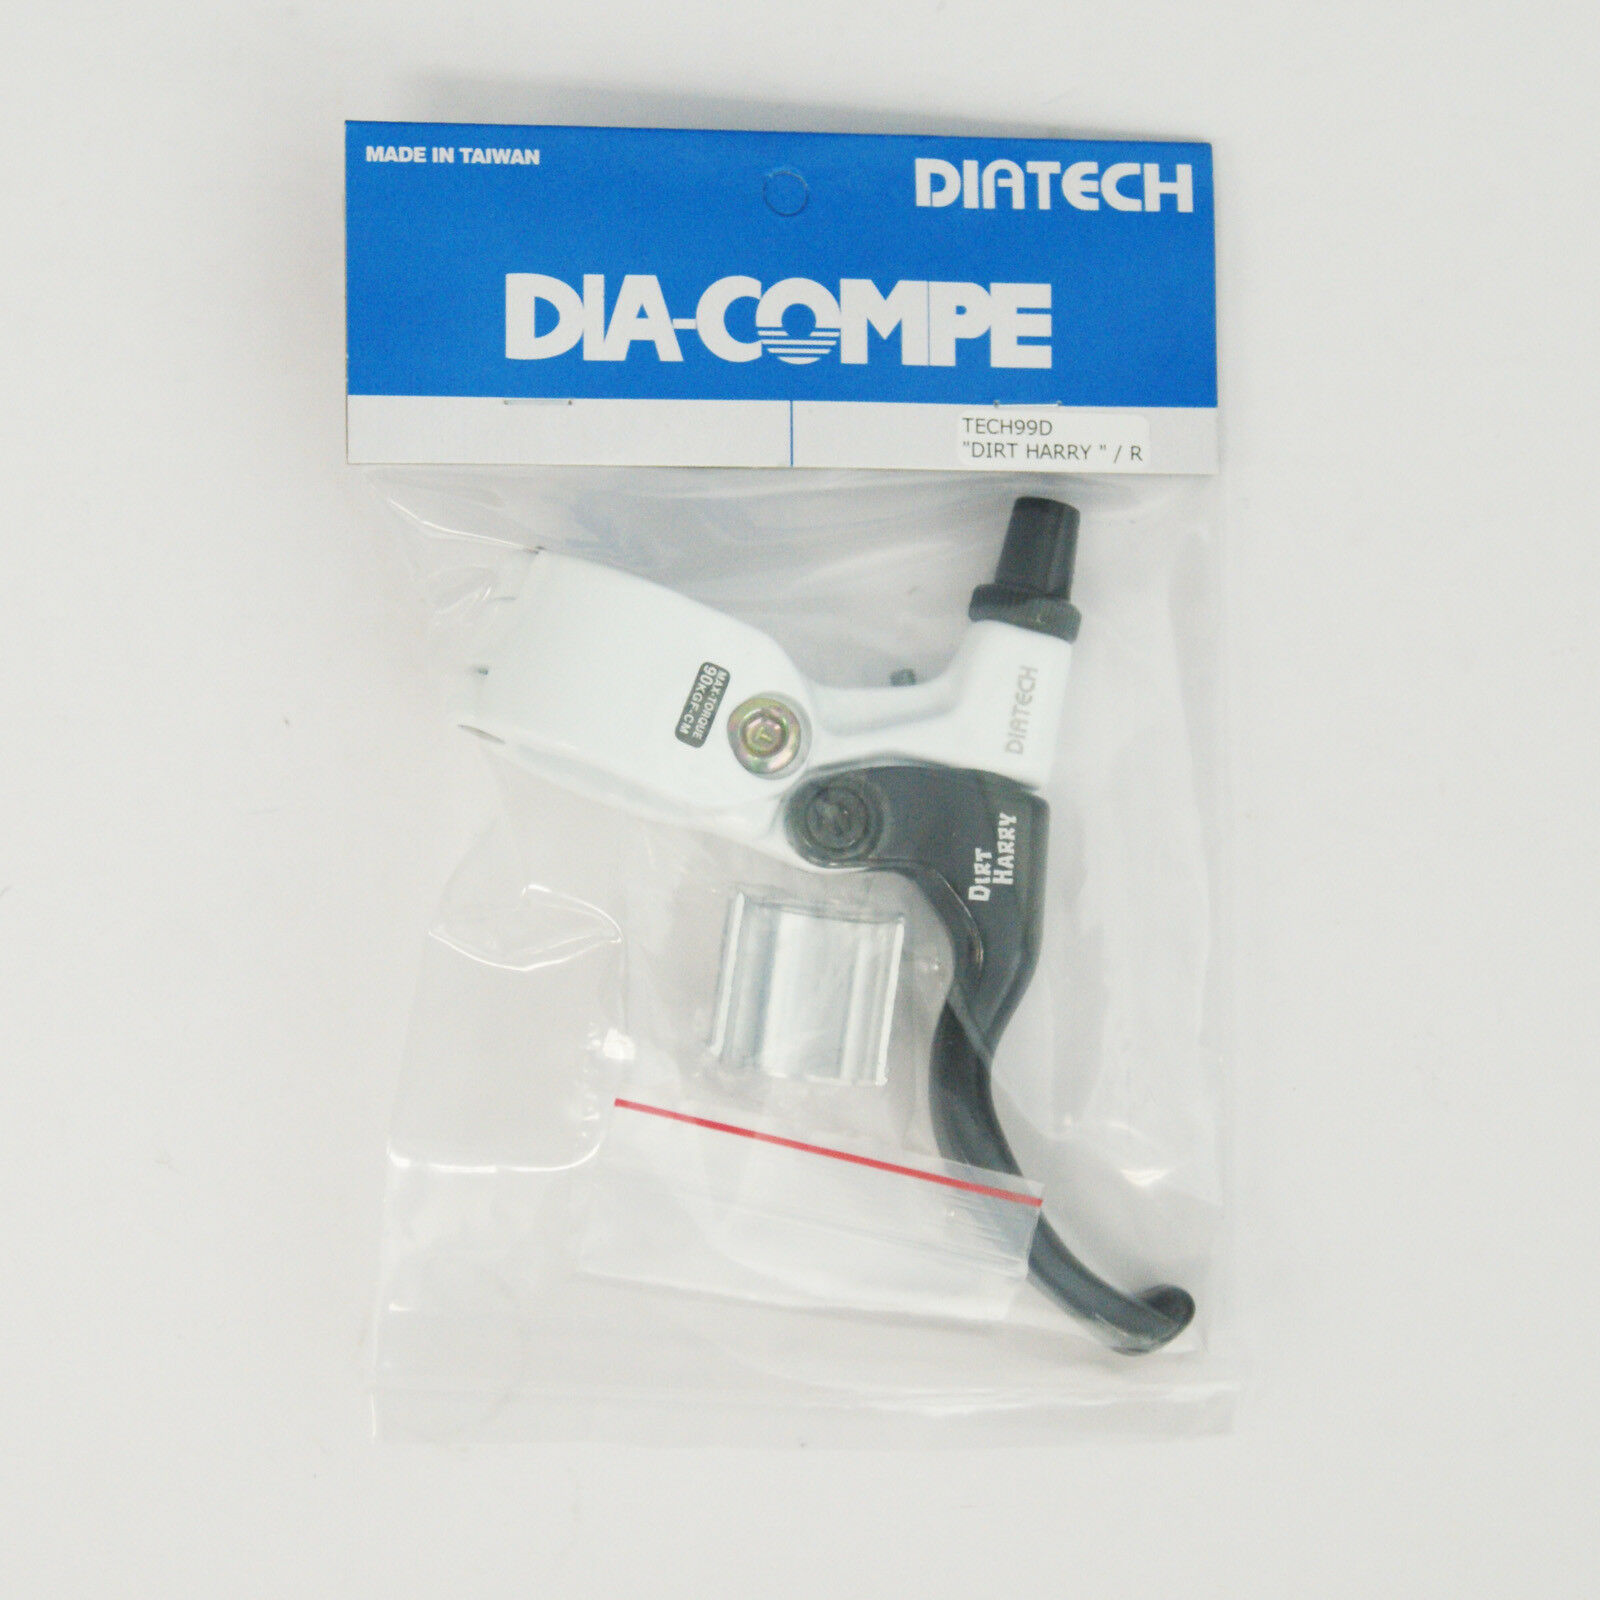 DIA-COMPE TECH99D DIRT HARRY Brake Lever (Right Only) White